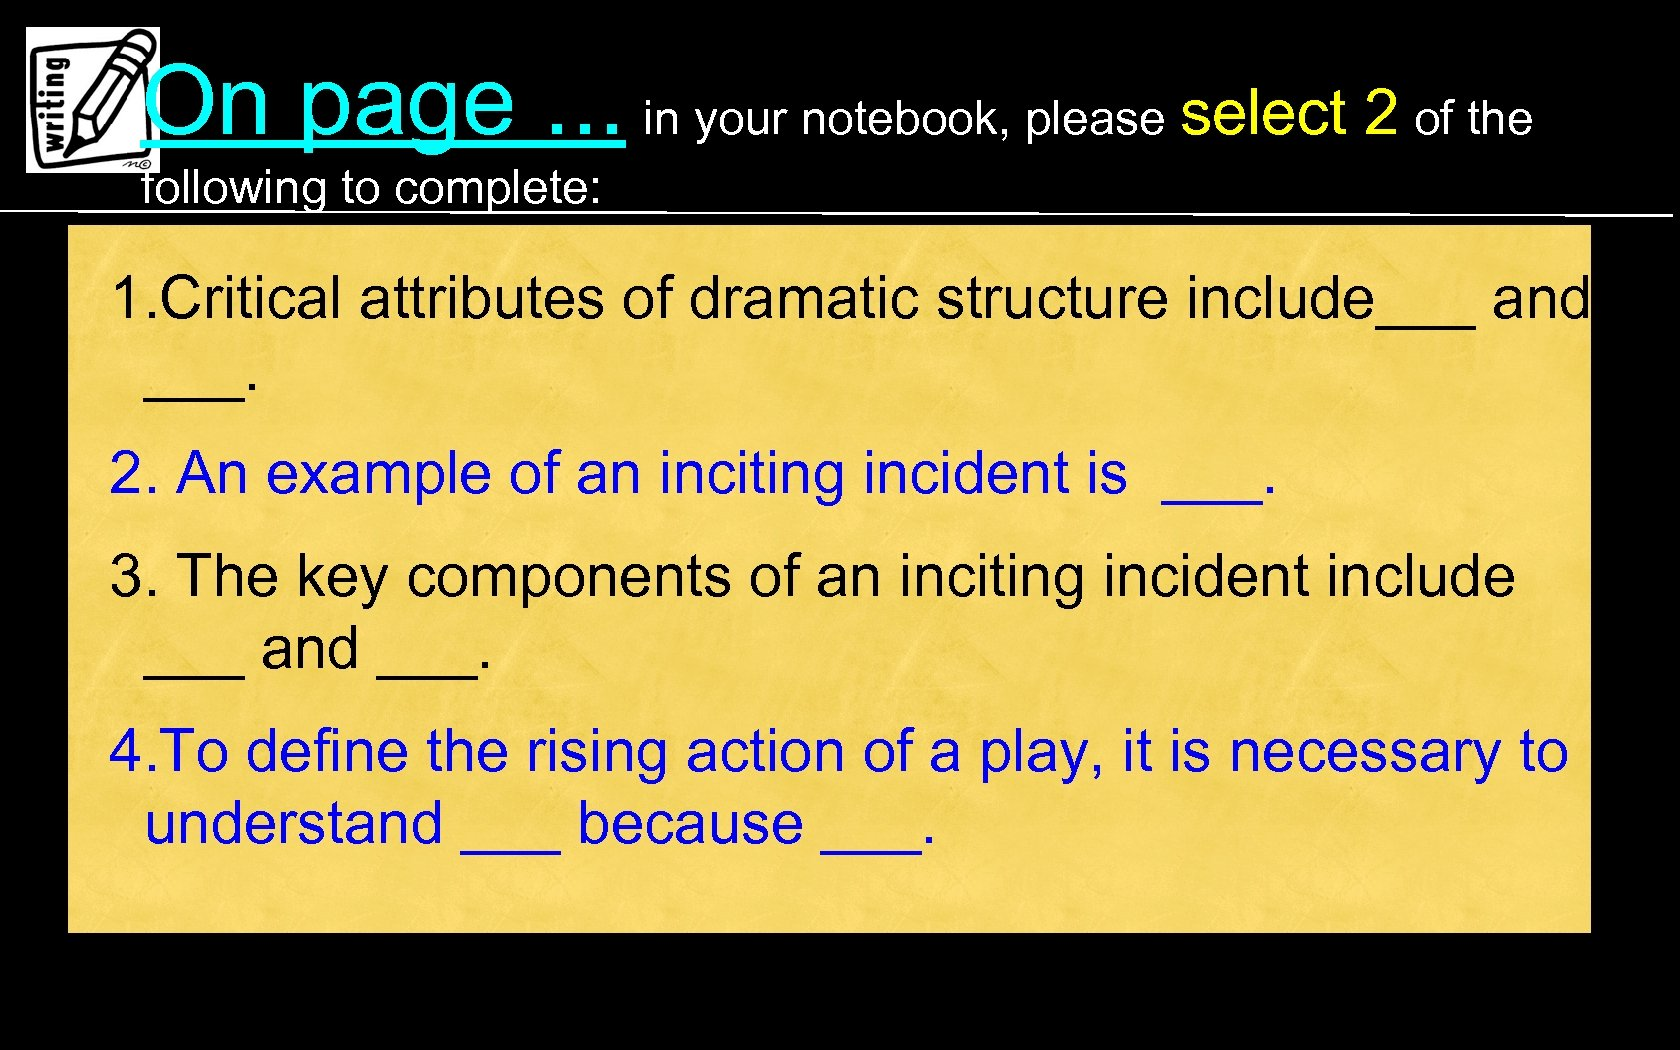 On page. . . in your notebook, please select 2 of the following to